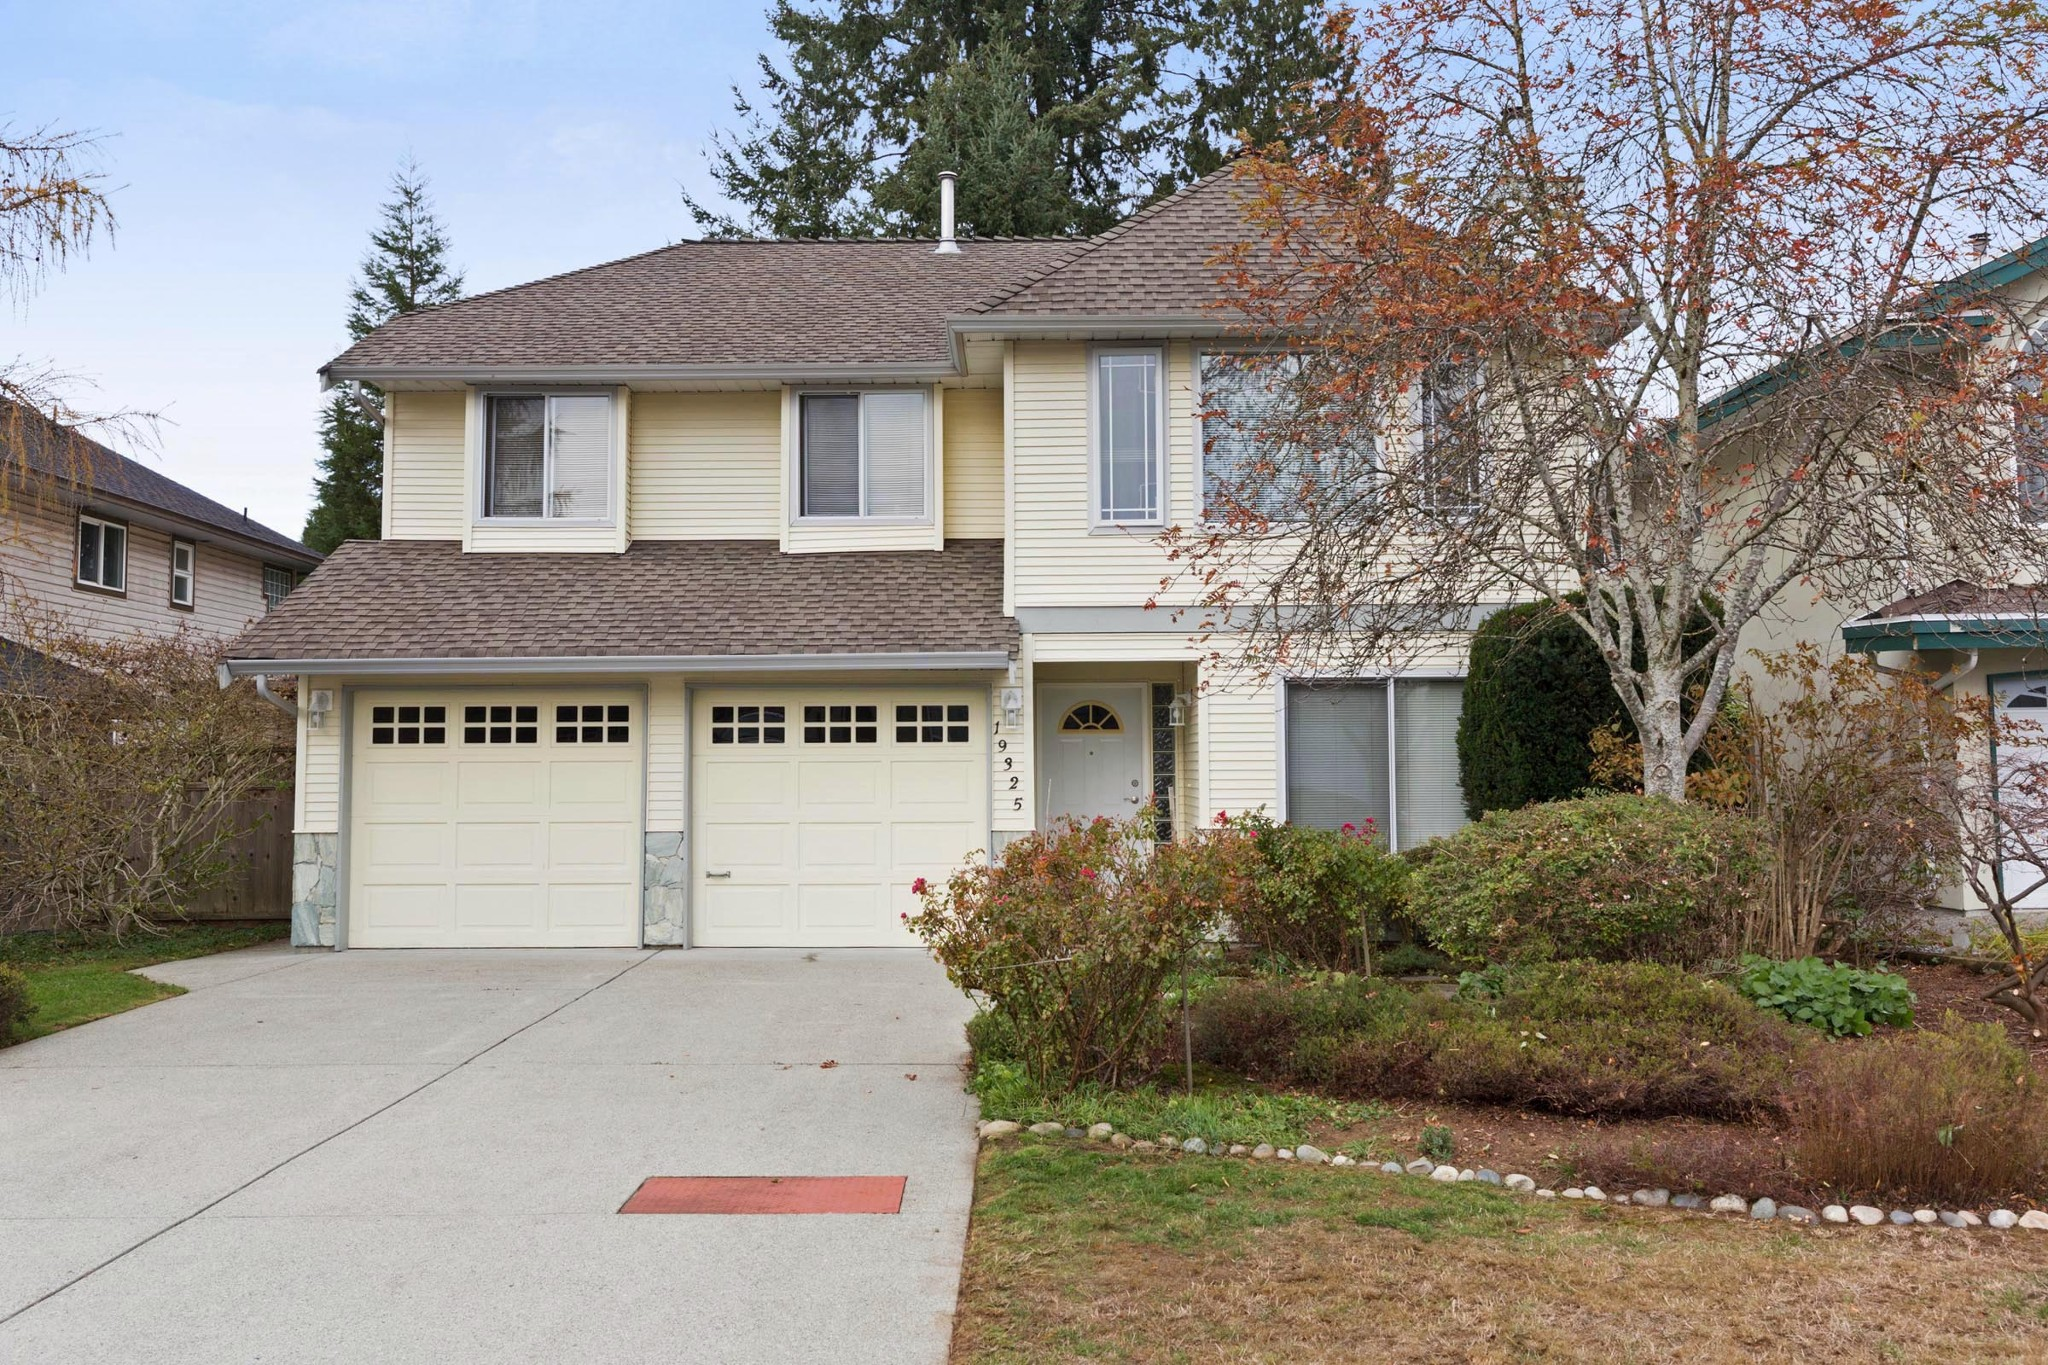 Main Photo: 19325 118B Avenue in Pitt Meadows: Central Meadows House for sale : MLS® # R2220729